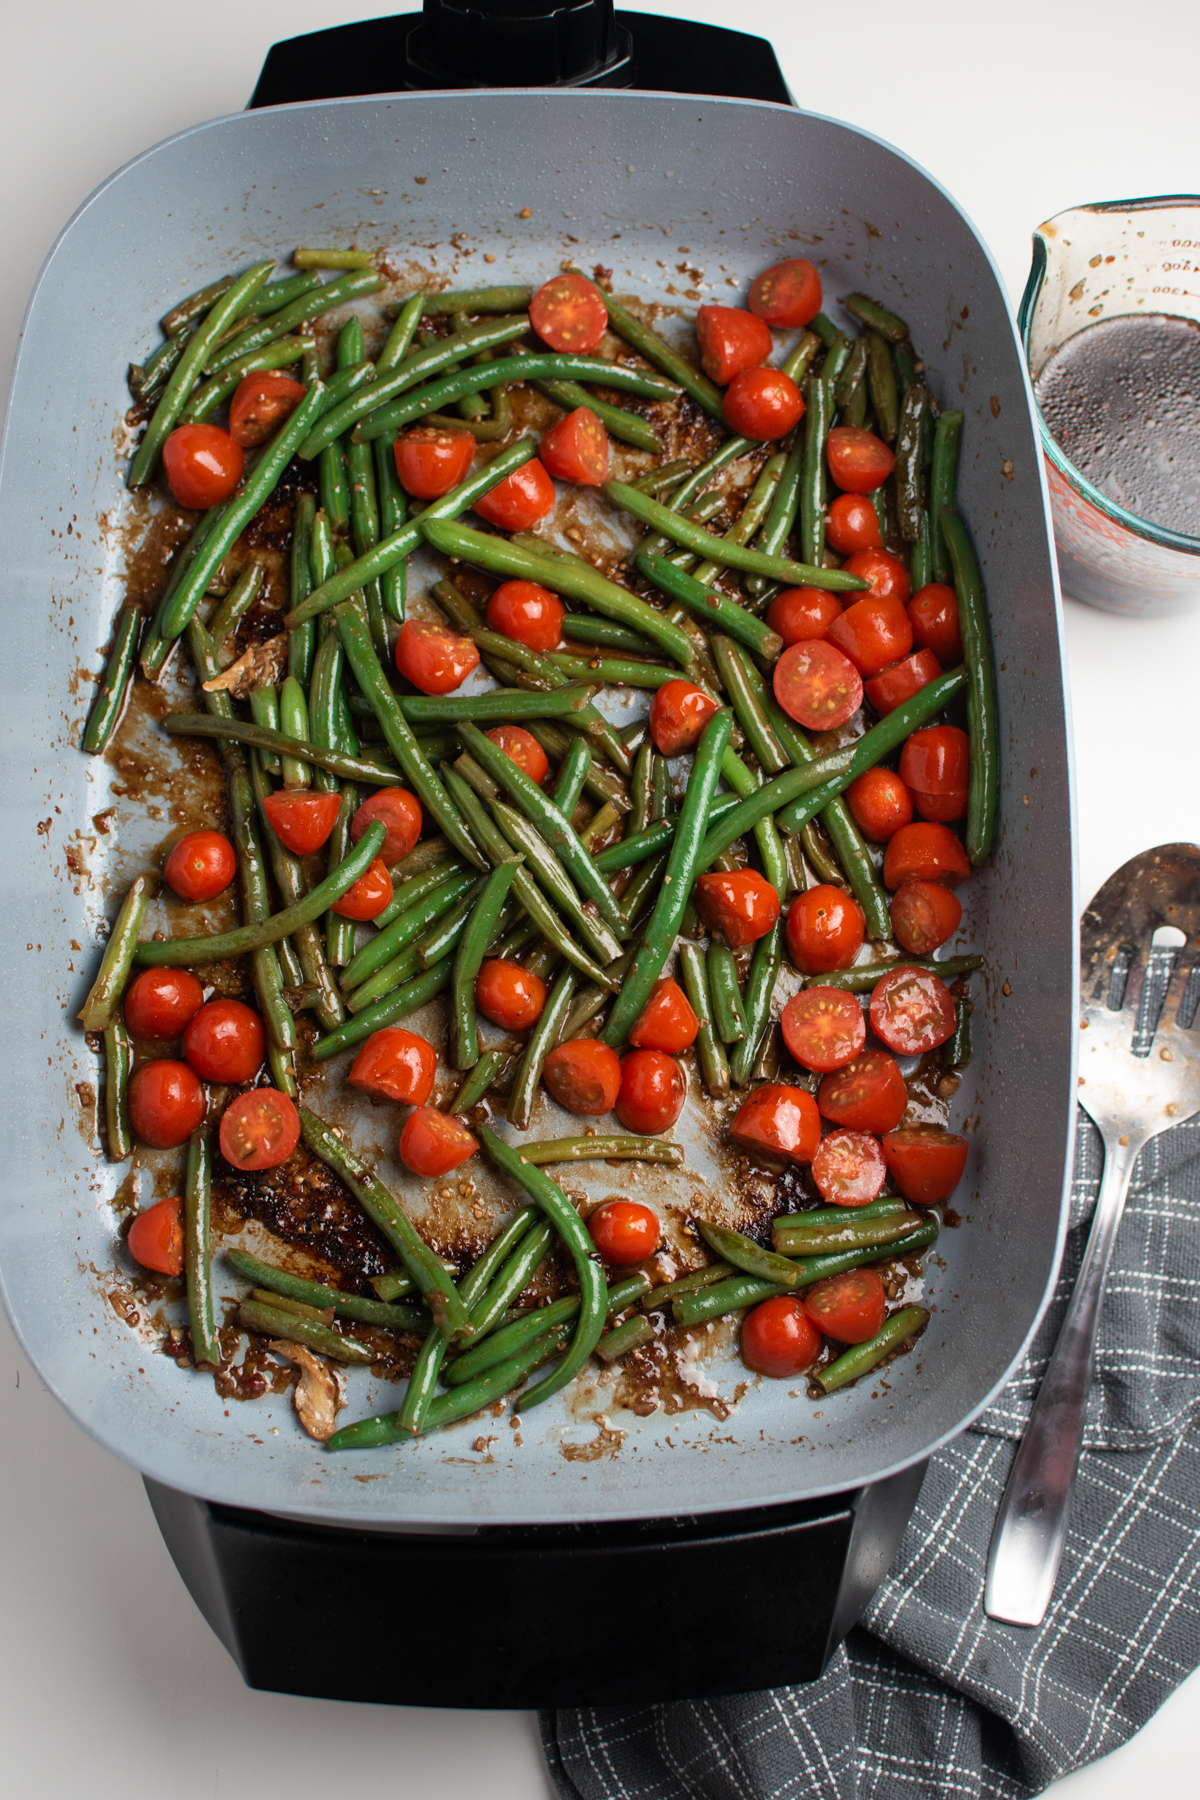 Several cooked green beans and sliced cherry tomatoes in electric skillet.